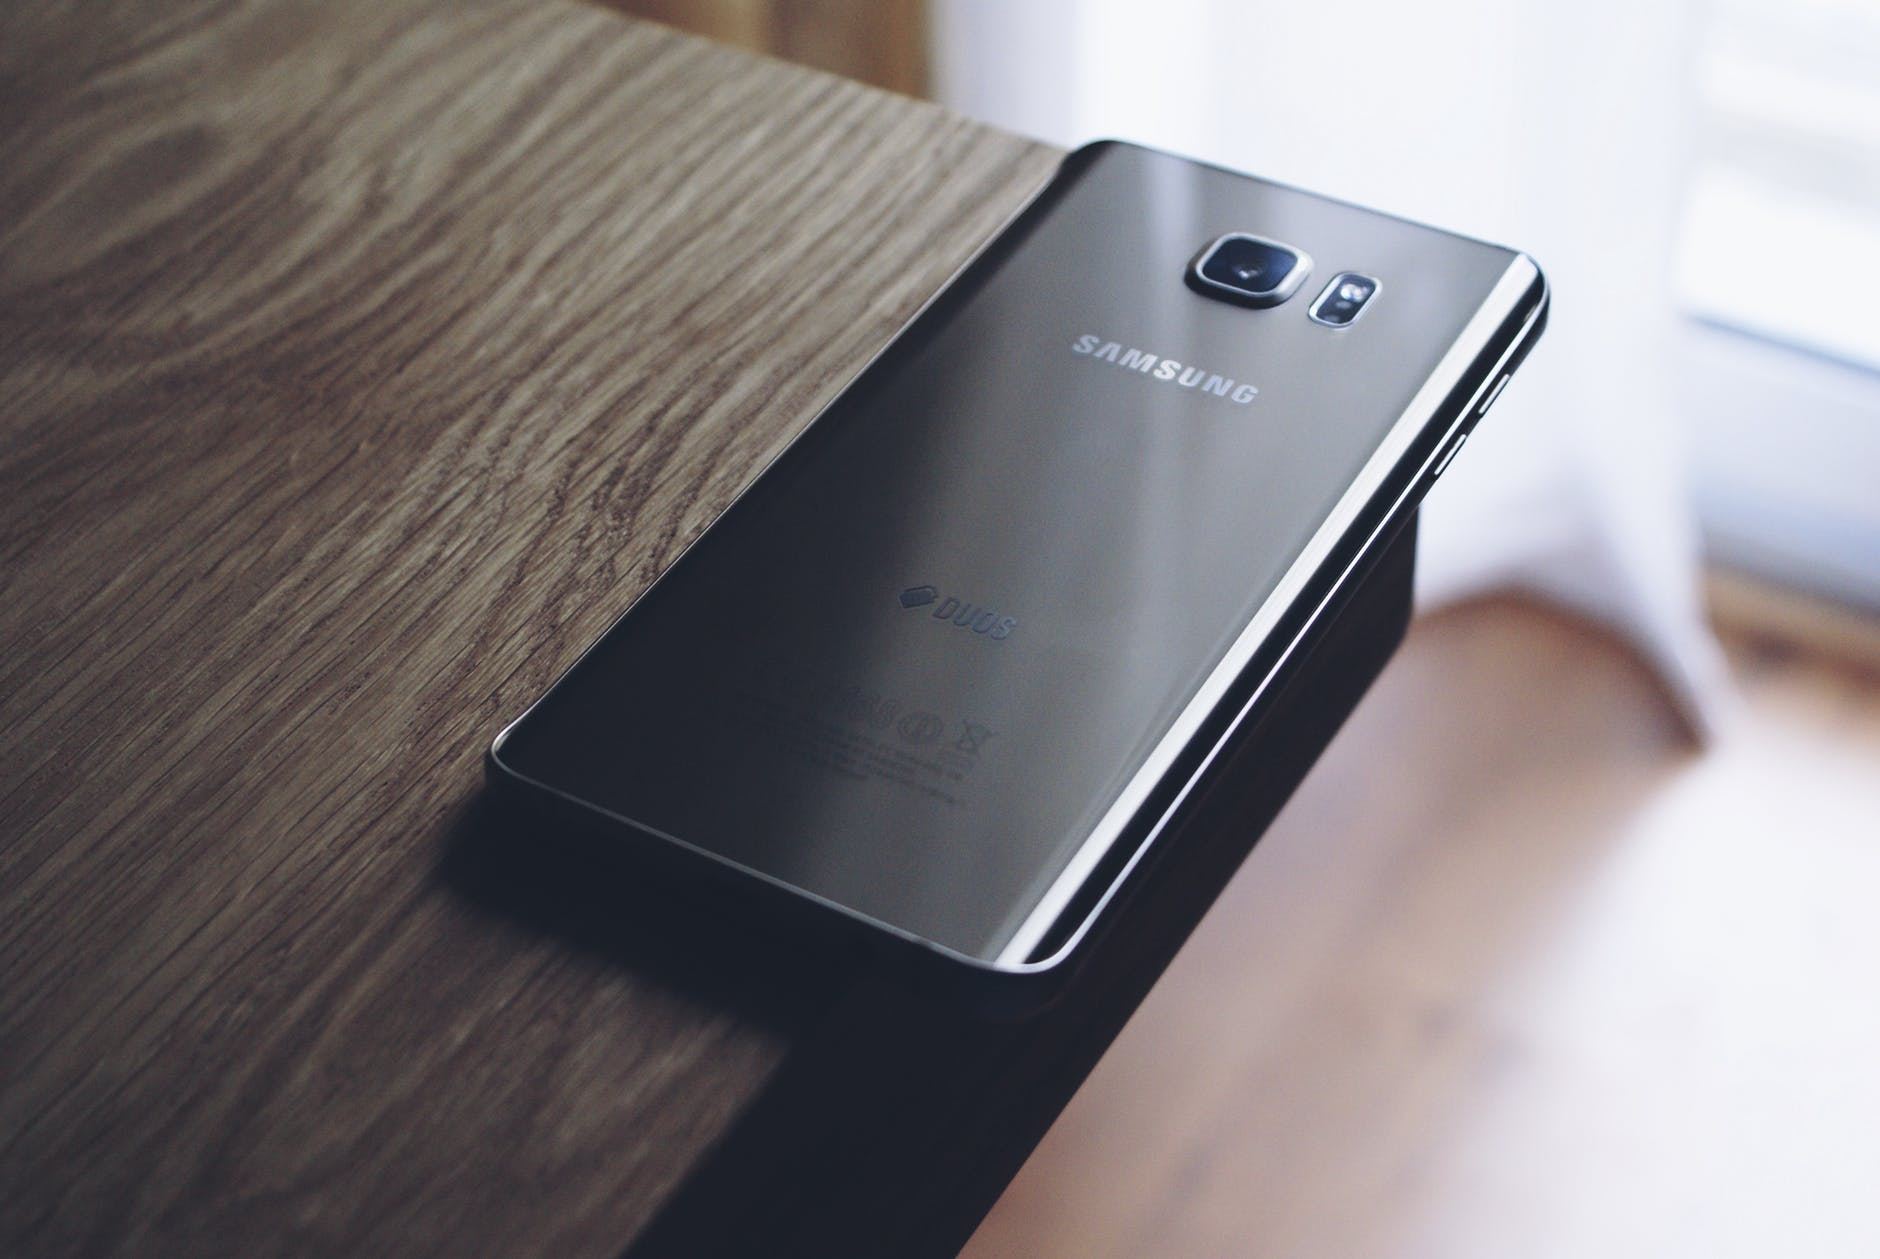 What Real Money Games can I Play on My Samsung?